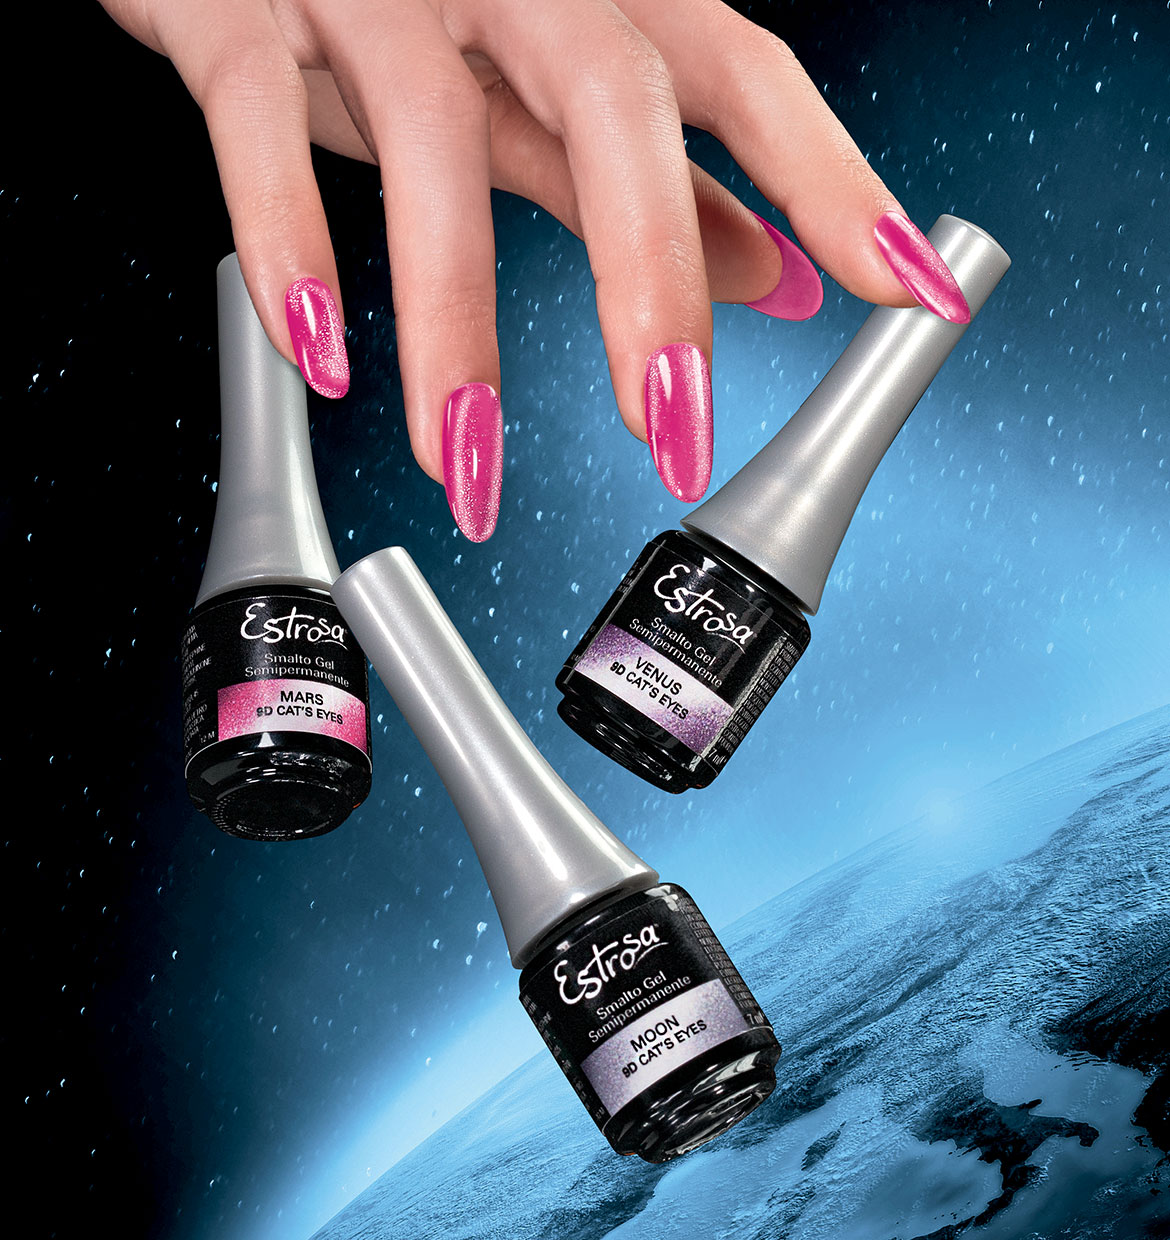 Glamour Glitter Estrosa Collection